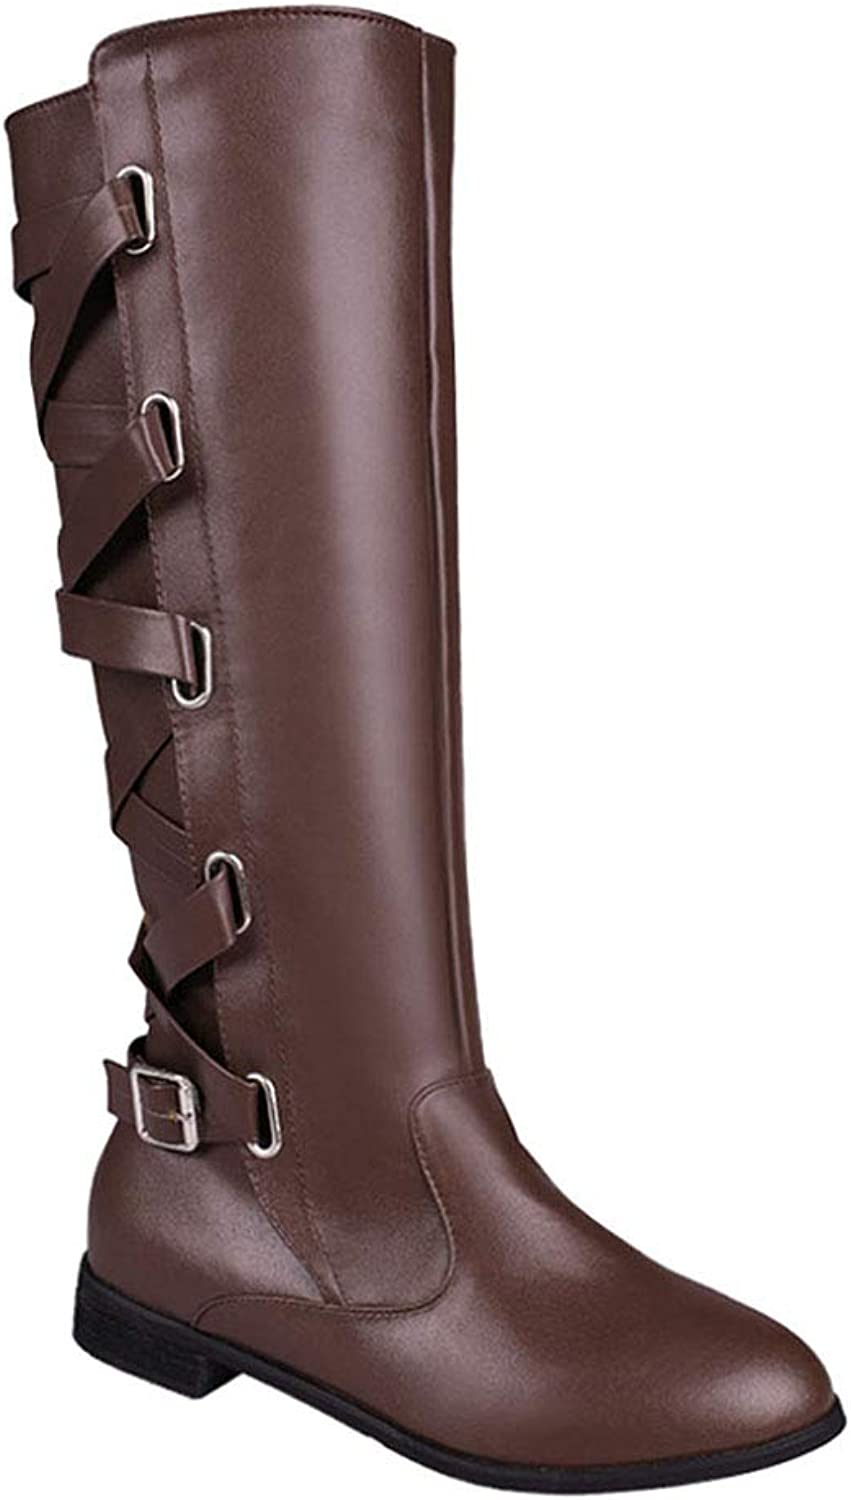 Uirend Long Knee High Boots Riding shoes Women - Ladies Low Block Heel Leather shoes Womens Leg Wide Calf Cowboy Combat Knight Boots Zip Buckle Detail Biker Casual Winter